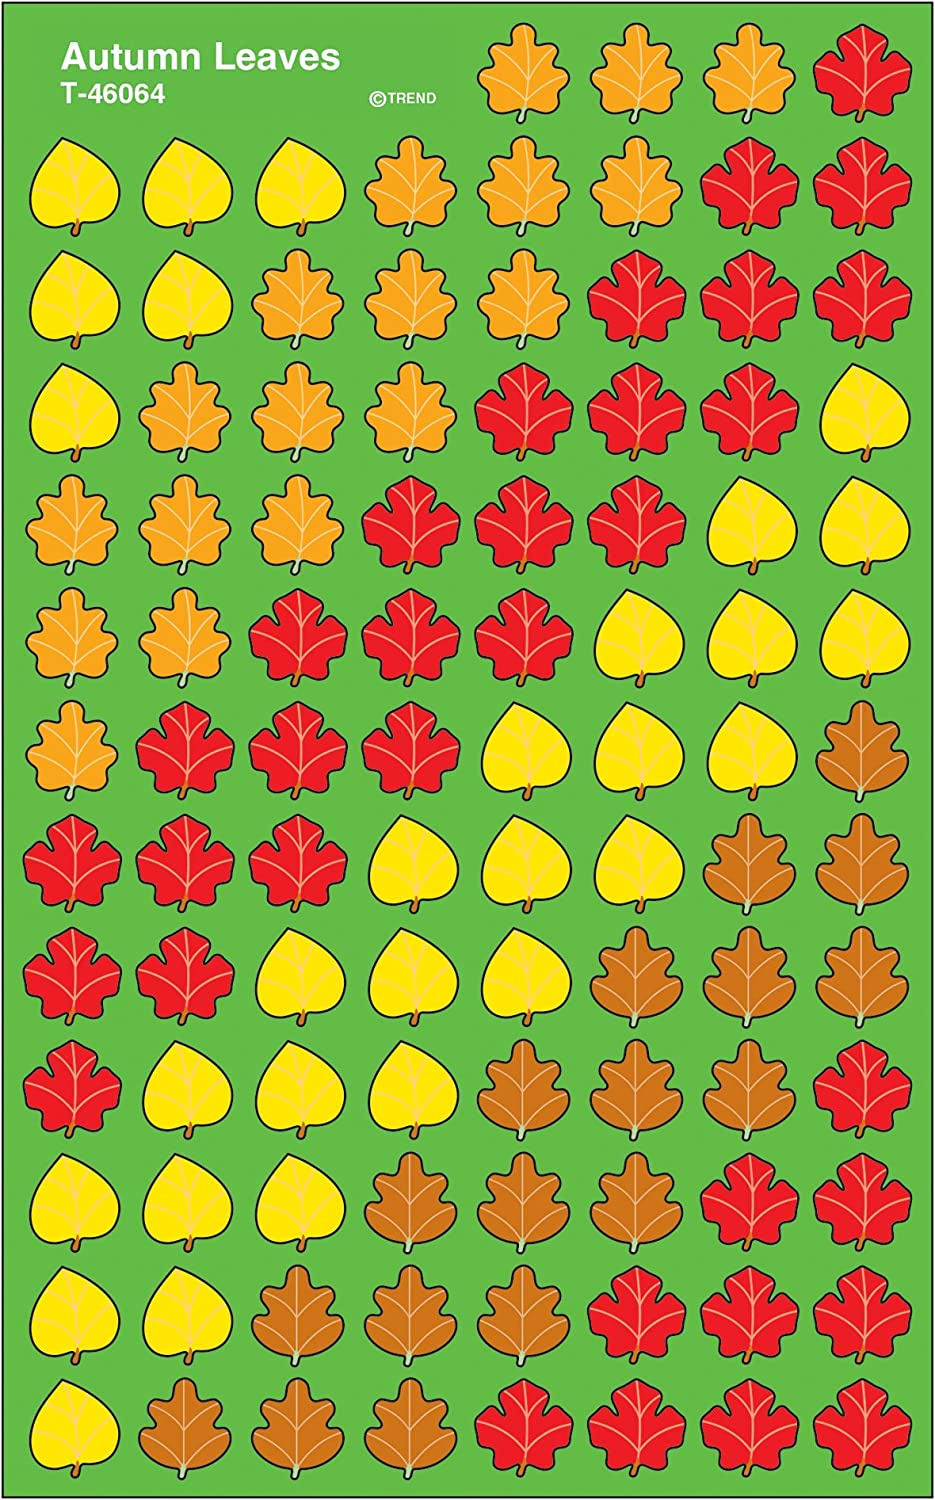 Trend Enterprises Inc. Autumn Leaves superShapes Stickers, 800 ct